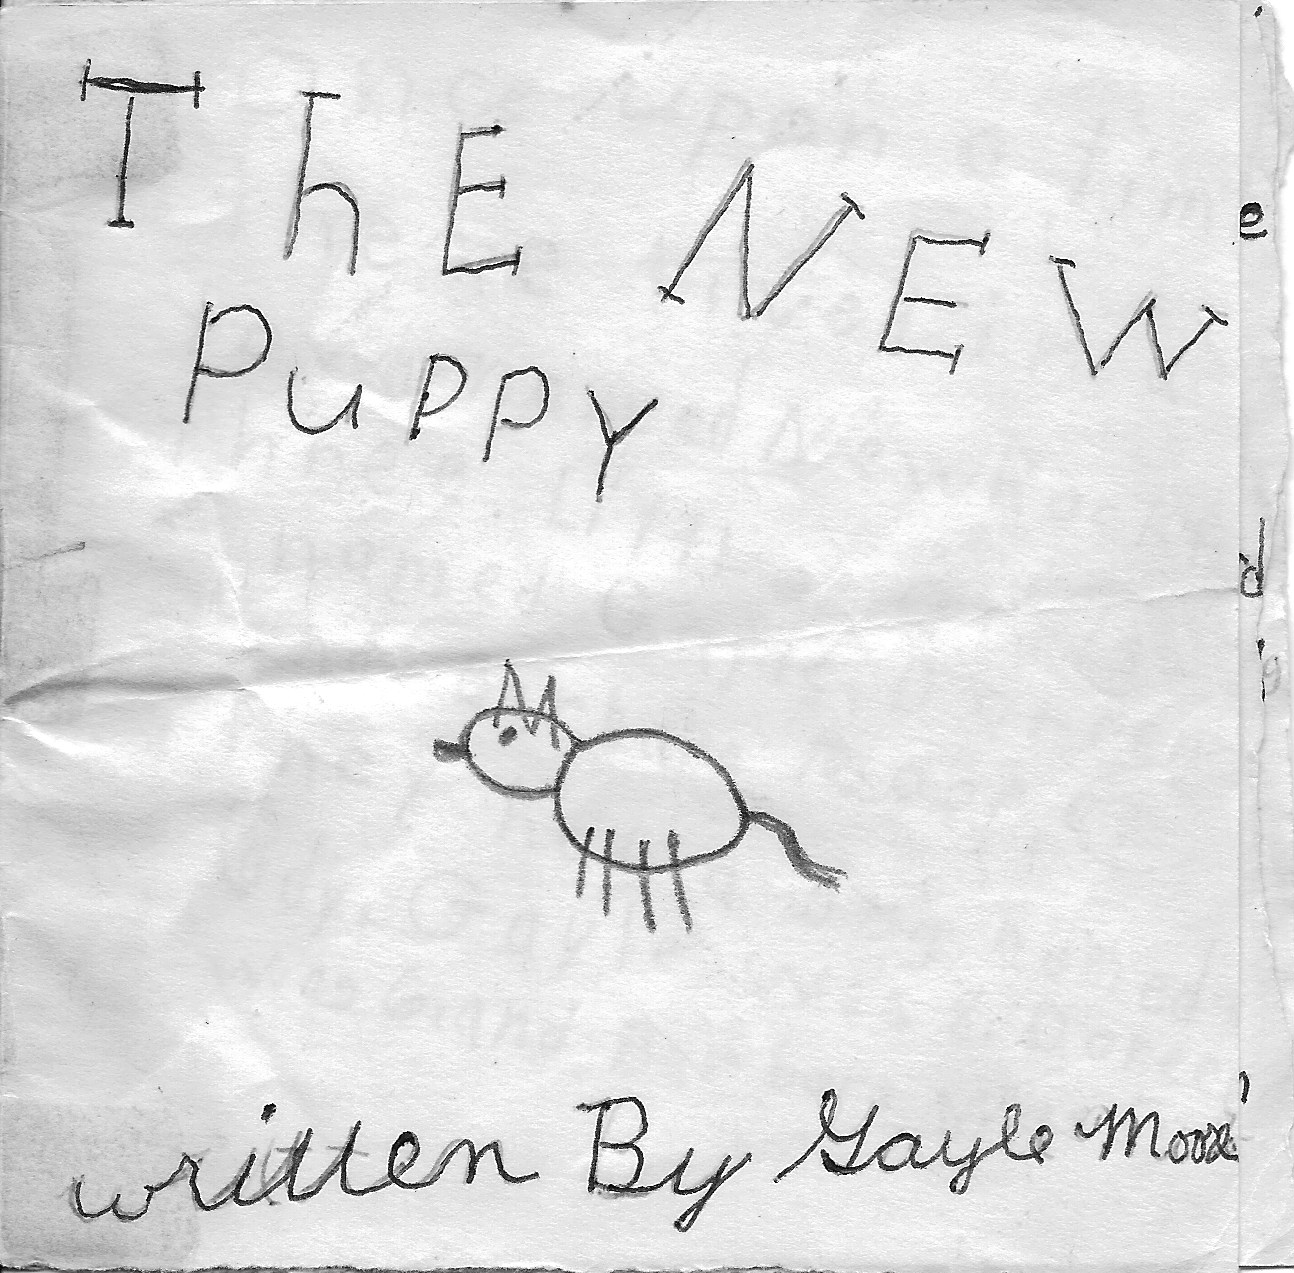 The New Puppy Cover